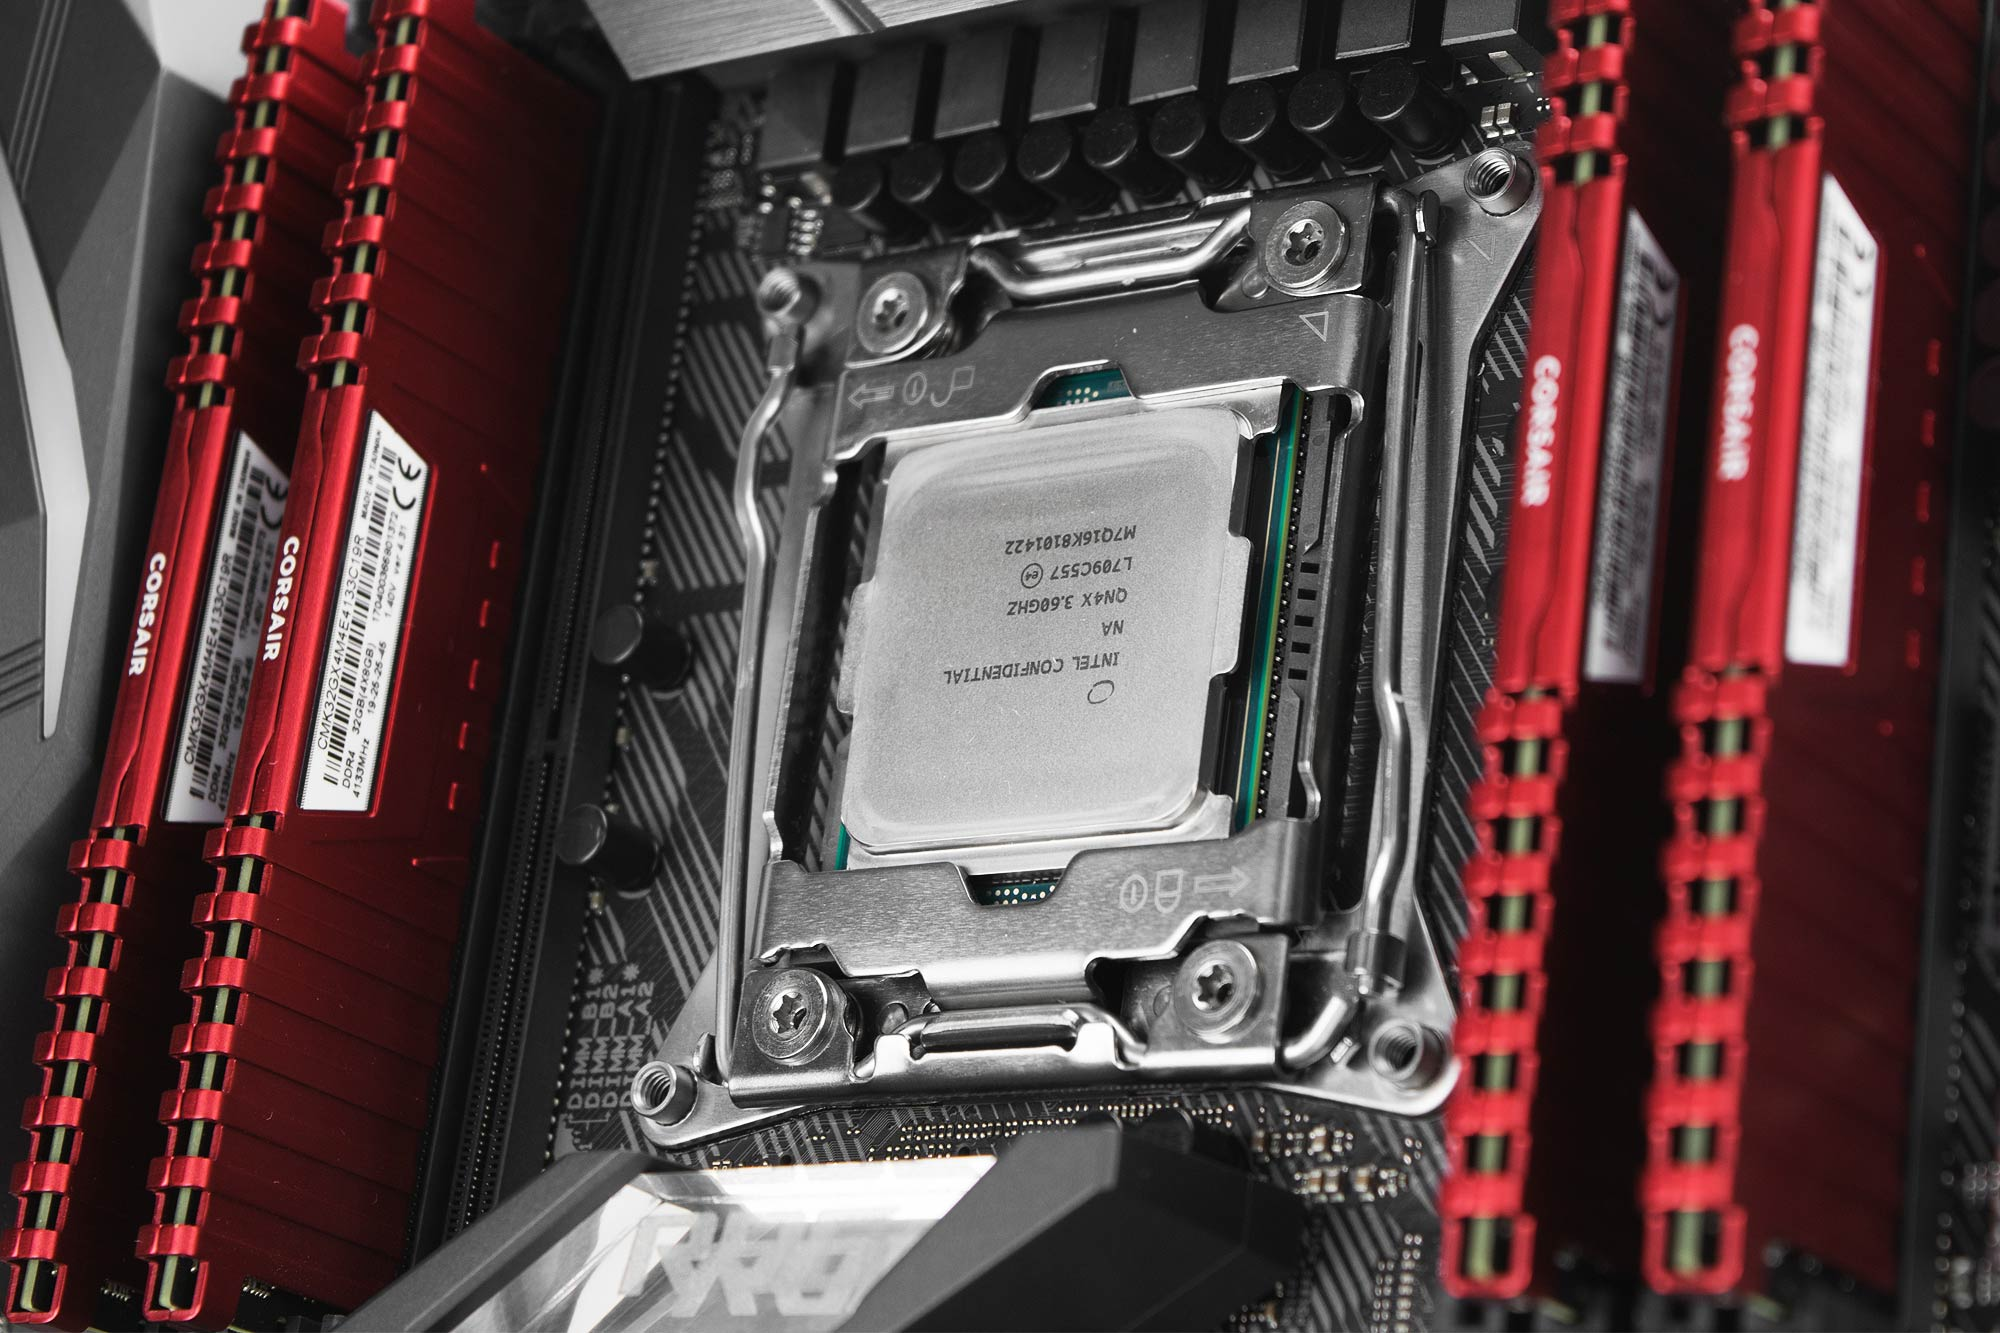 Testing-The-Impact-Of-Ultra-High-Speed-Memory-On-X299-Performance-3